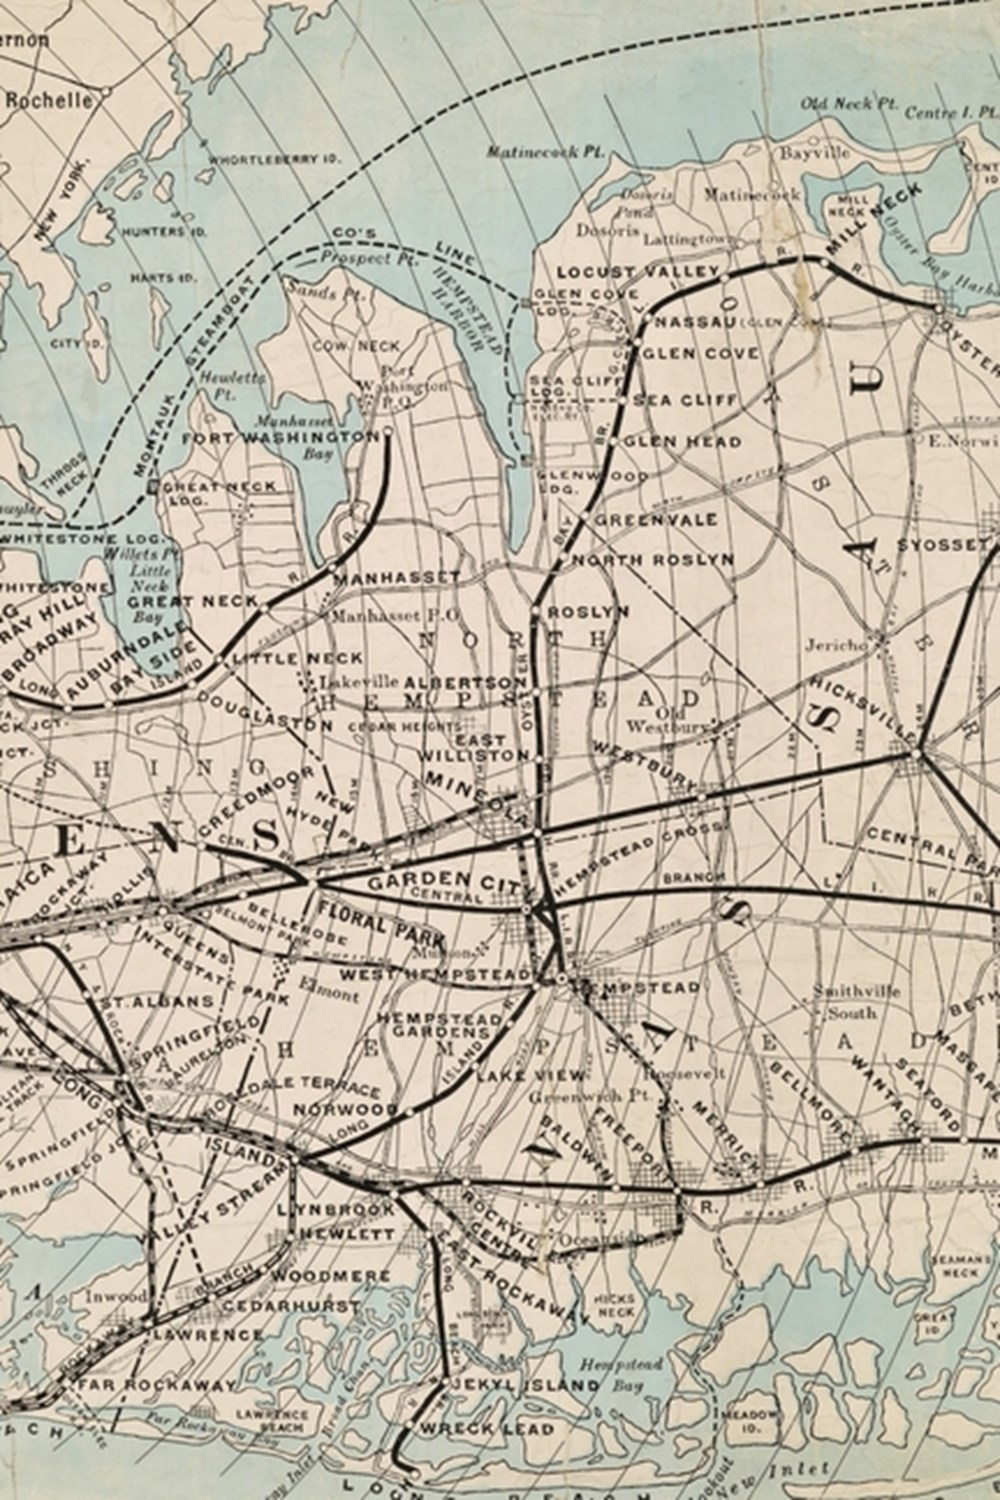 Rapid Transit Map of Kings, Queens, and Nassau Counties, Long Island - A Poetose Notebook / Journal